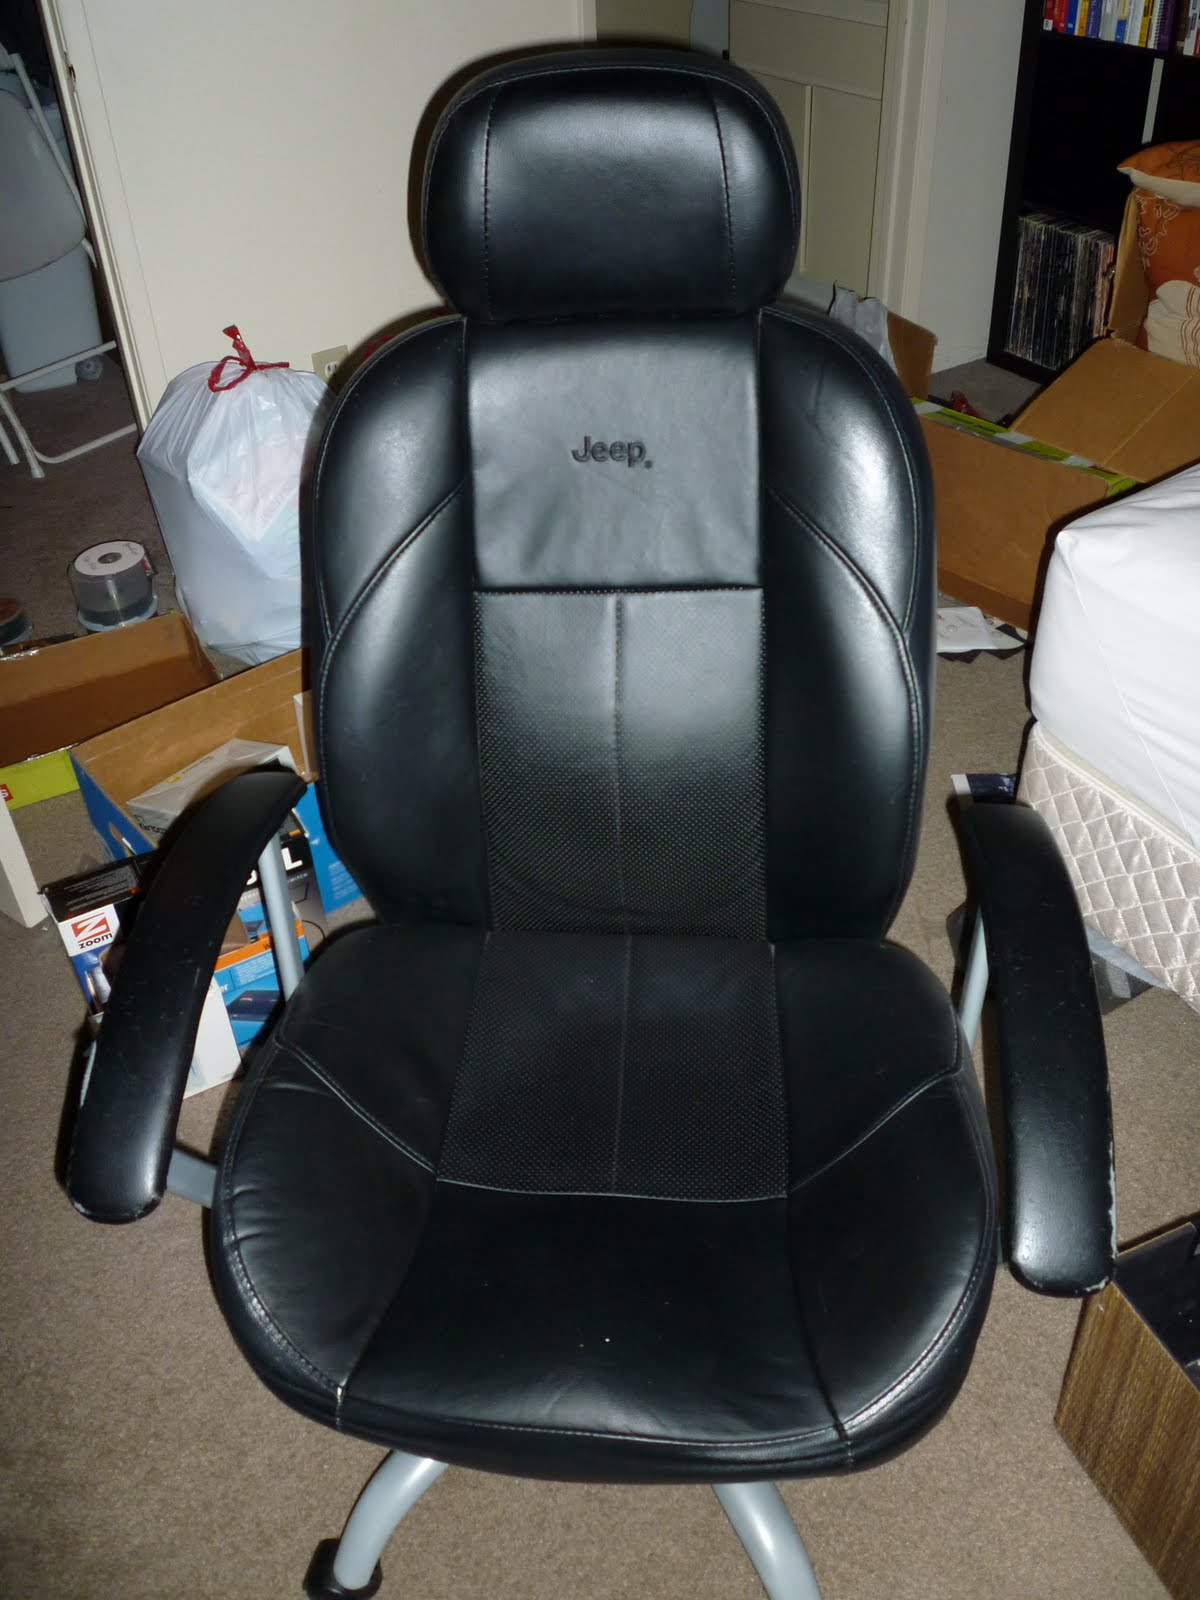 jeep desk chair clearance outdoor cushions onlinegaragesale